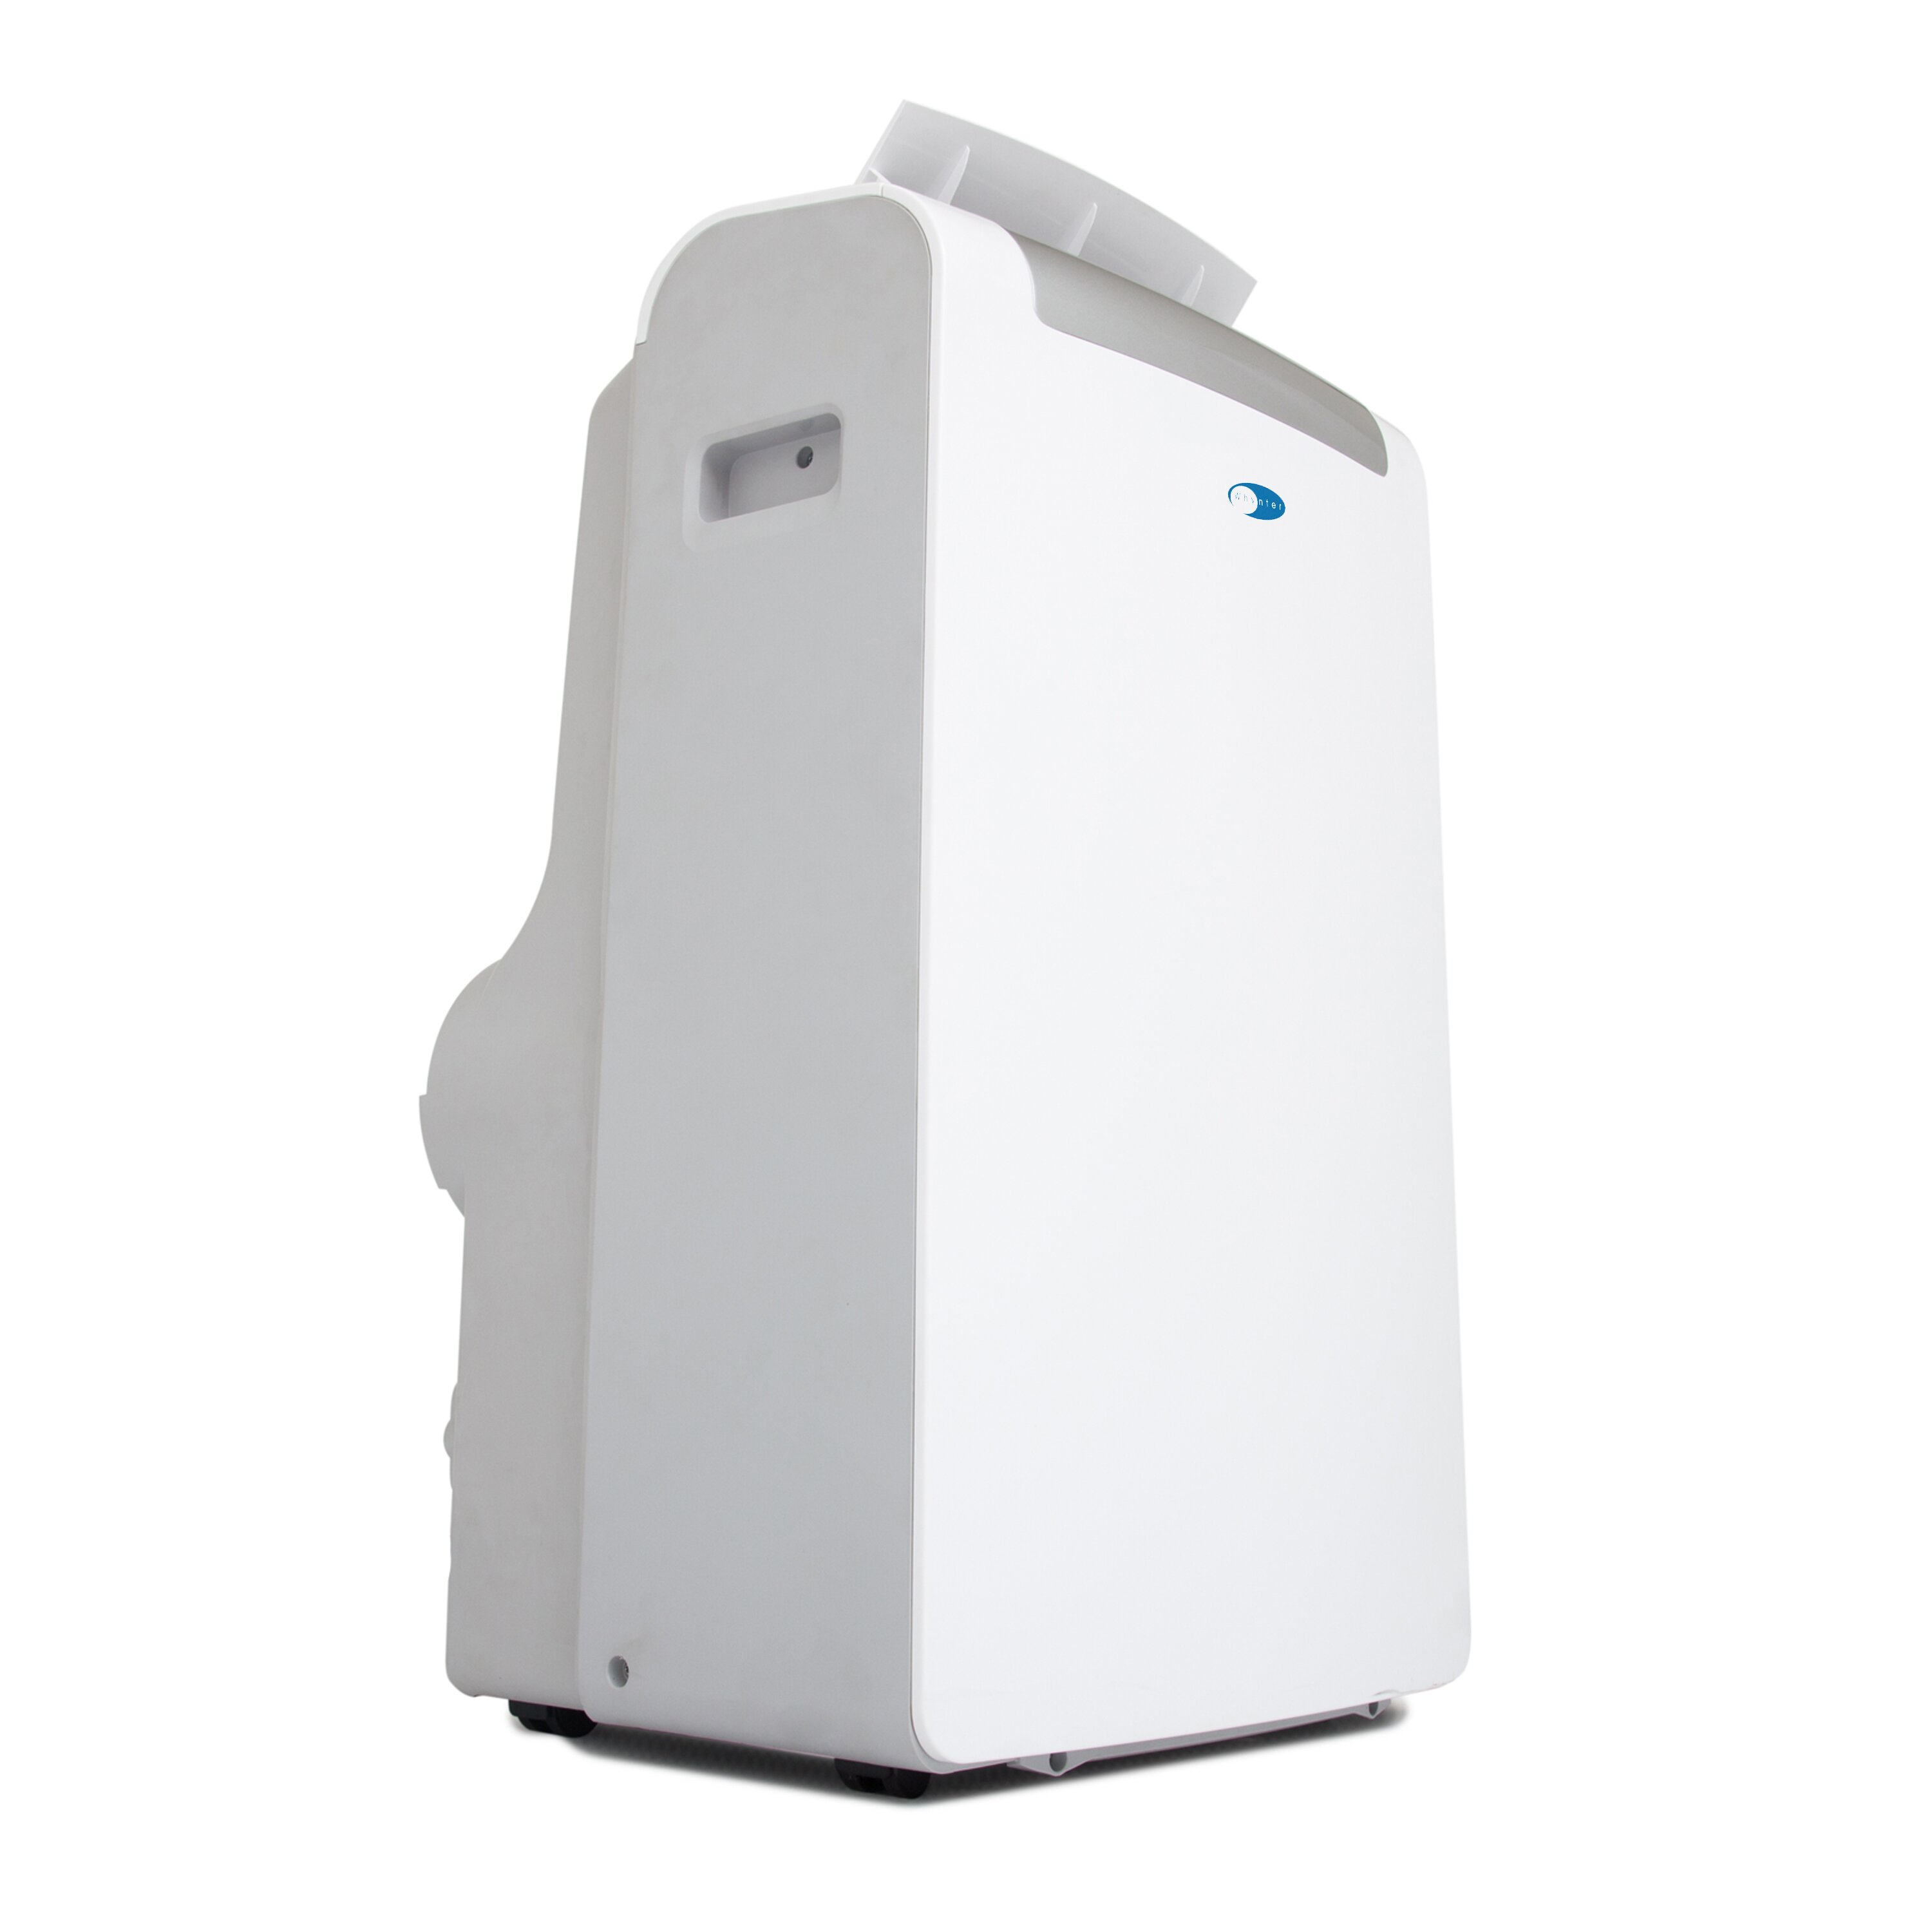 #2B74A0 Whynter 14000 BTU Portable Air Conditioner And Heater  Most Recent 13510 Portable Air Conditioner Ratings image with 3000x3000 px on helpvideos.info - Air Conditioners, Air Coolers and more